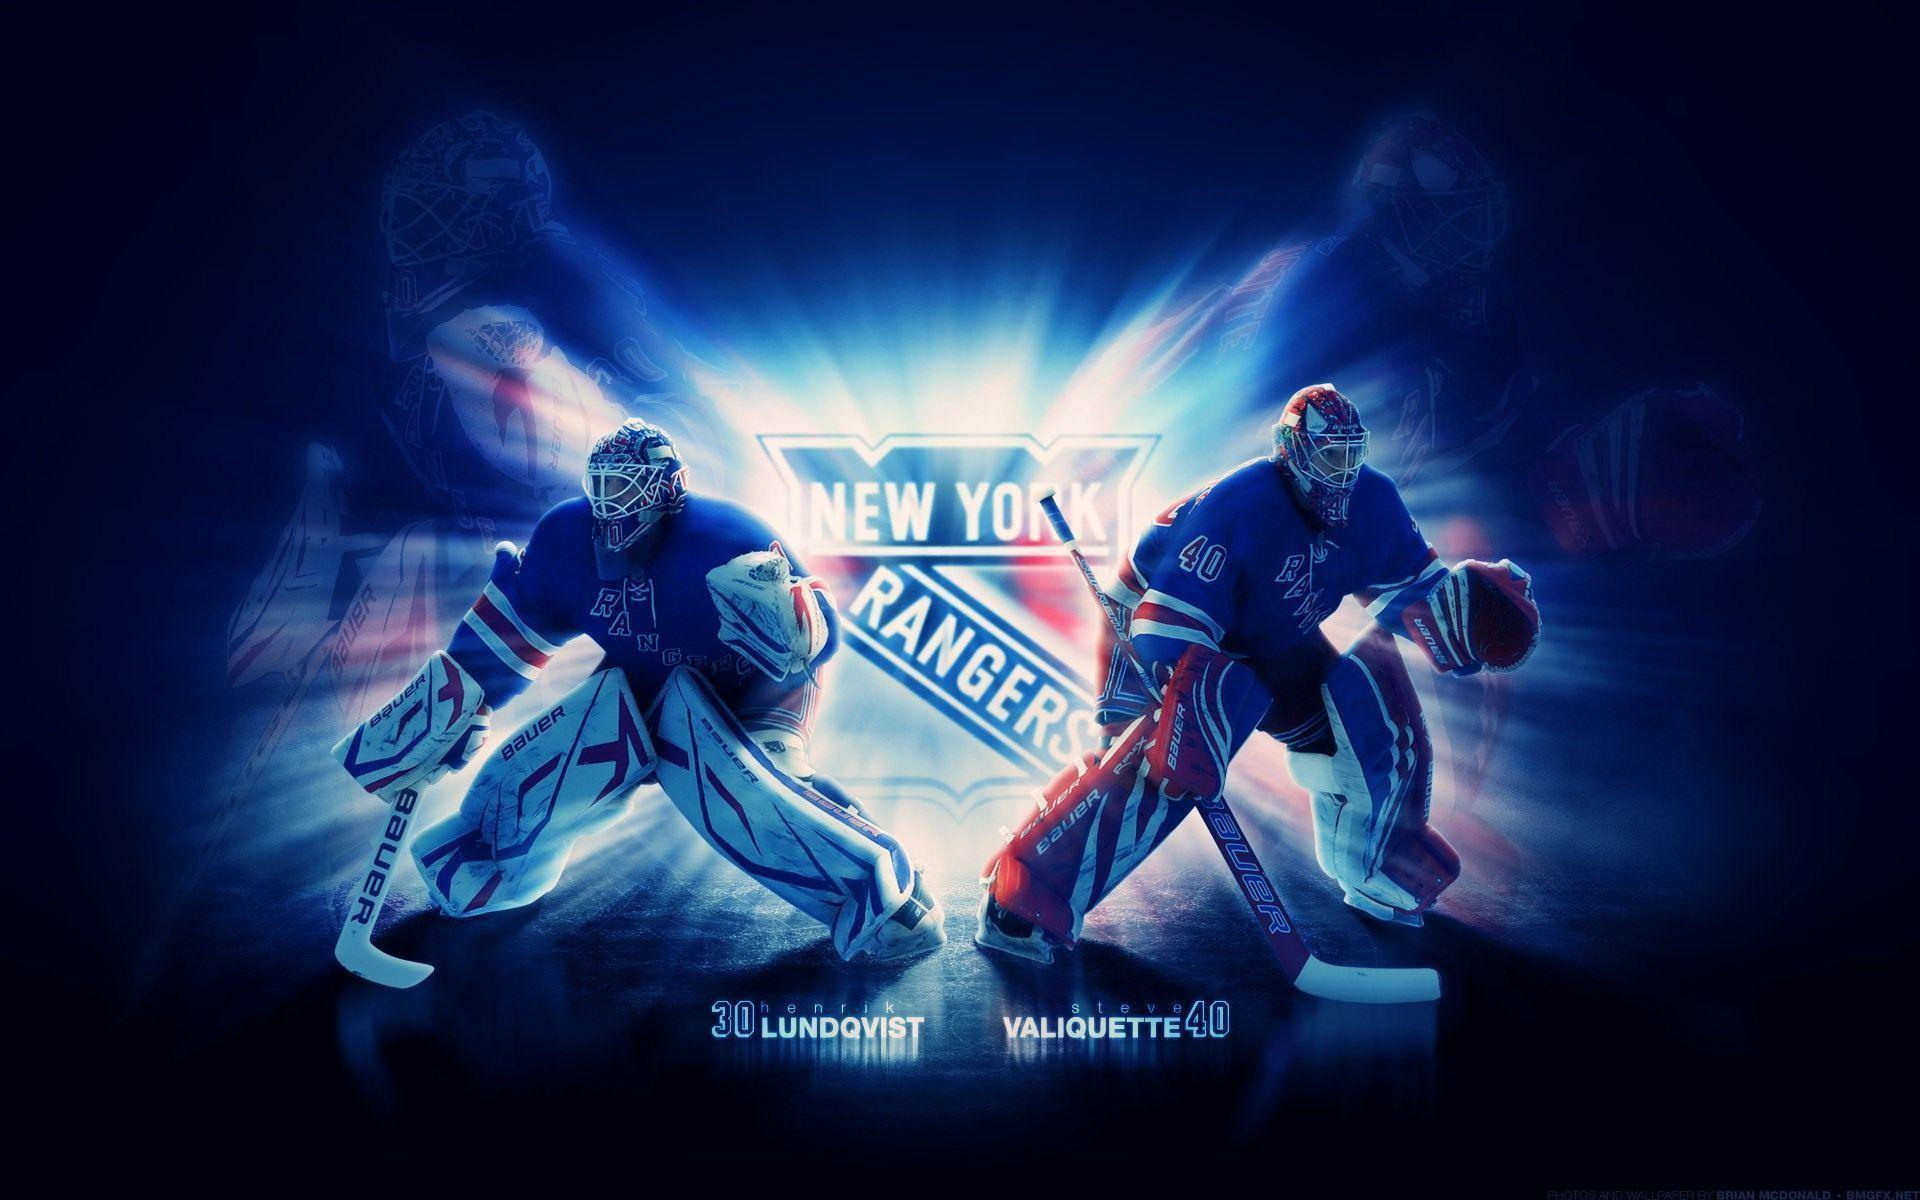 New York Rangers Wallpapers - Full HD wallpaper search